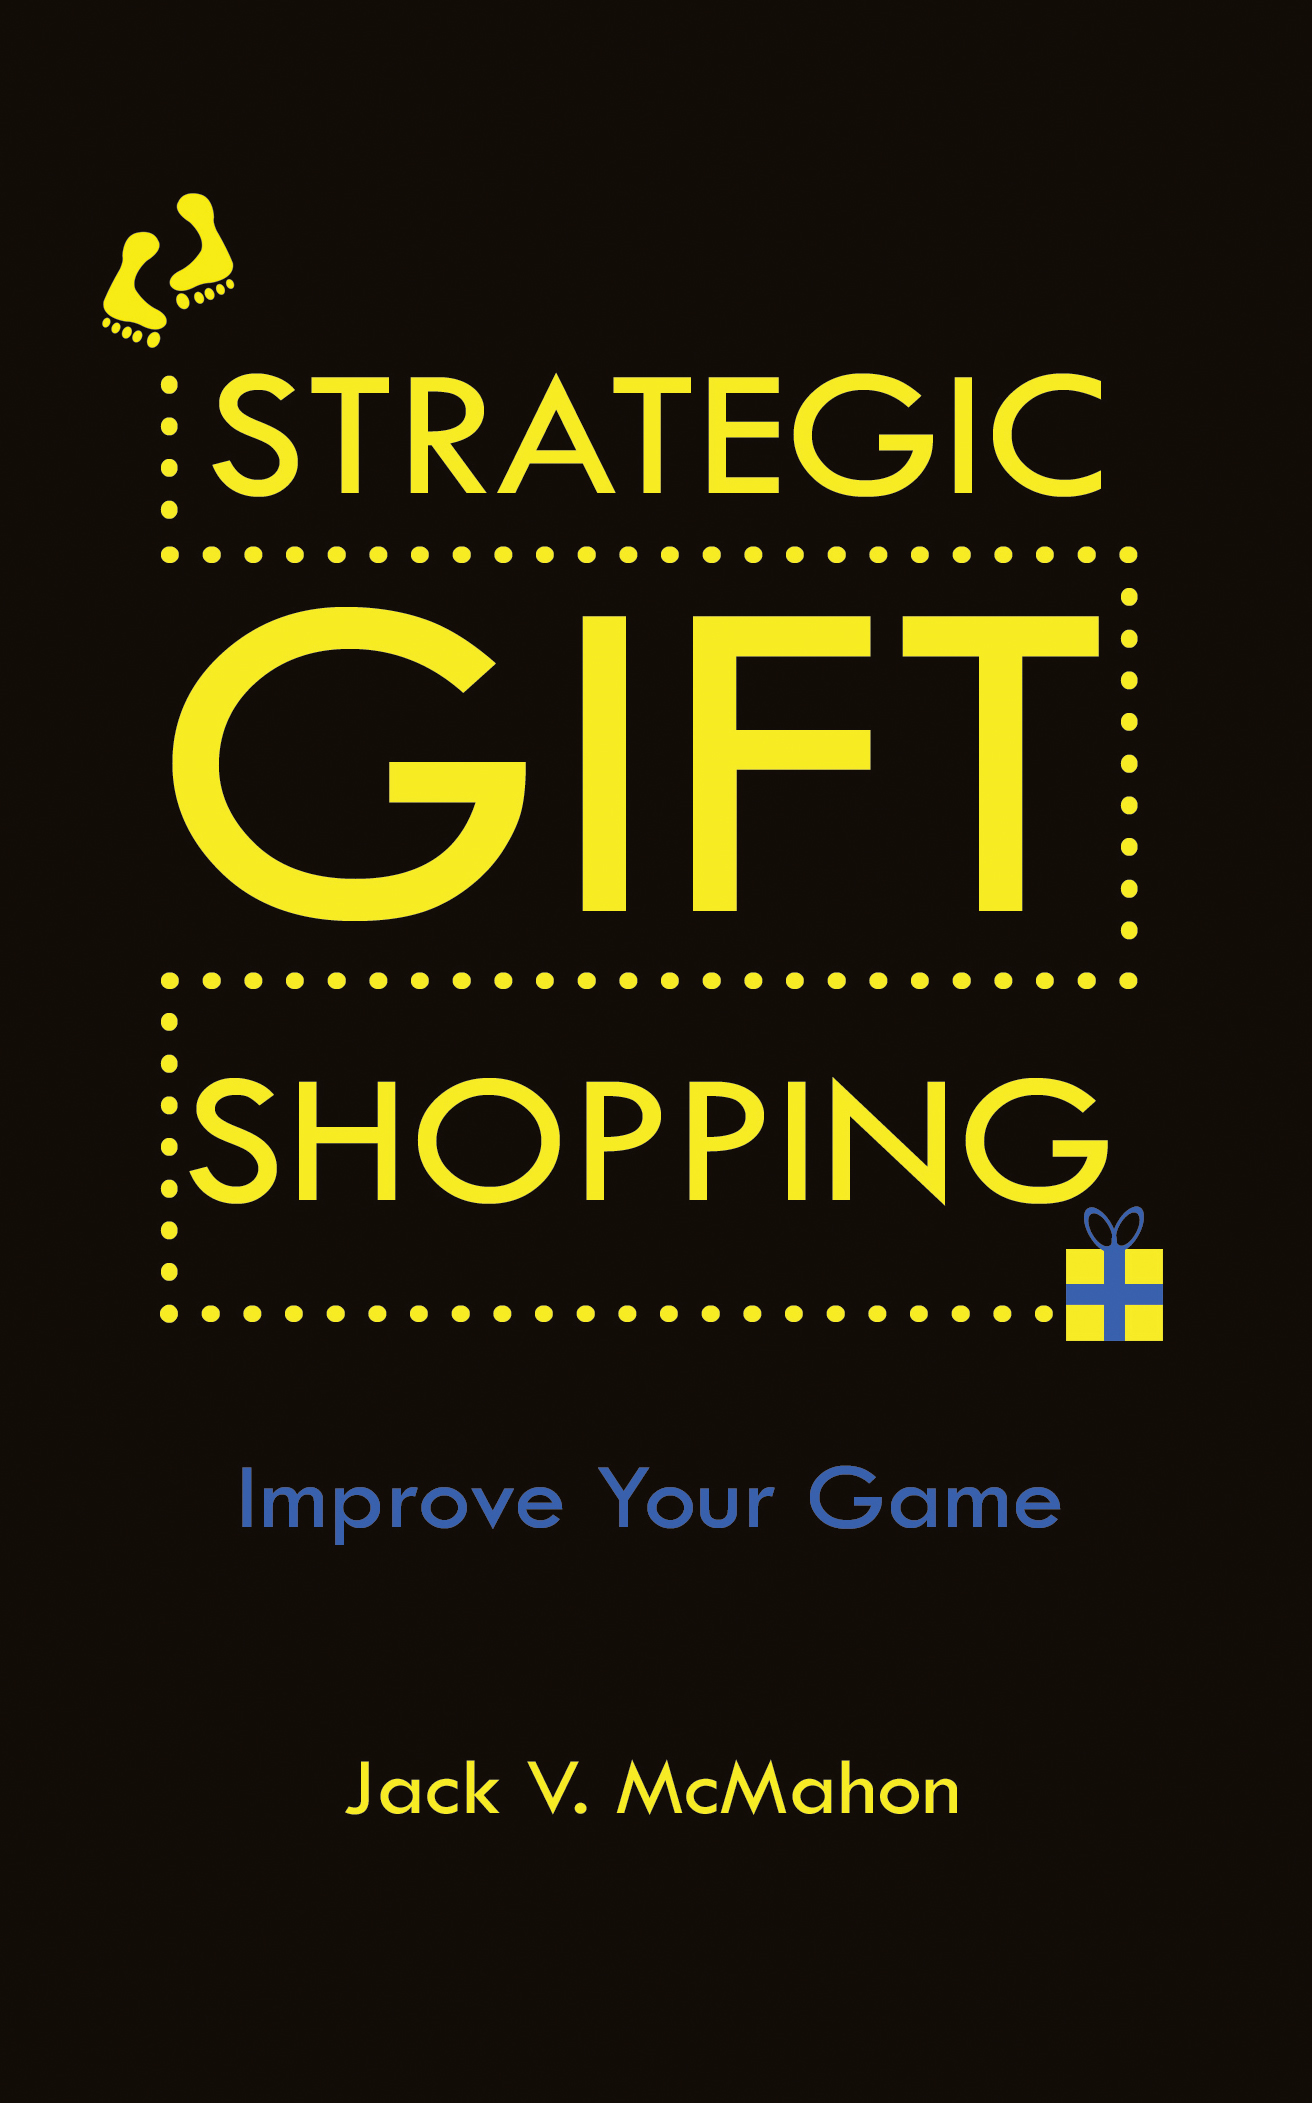 Strategic Gift Shopping Improve Your Game